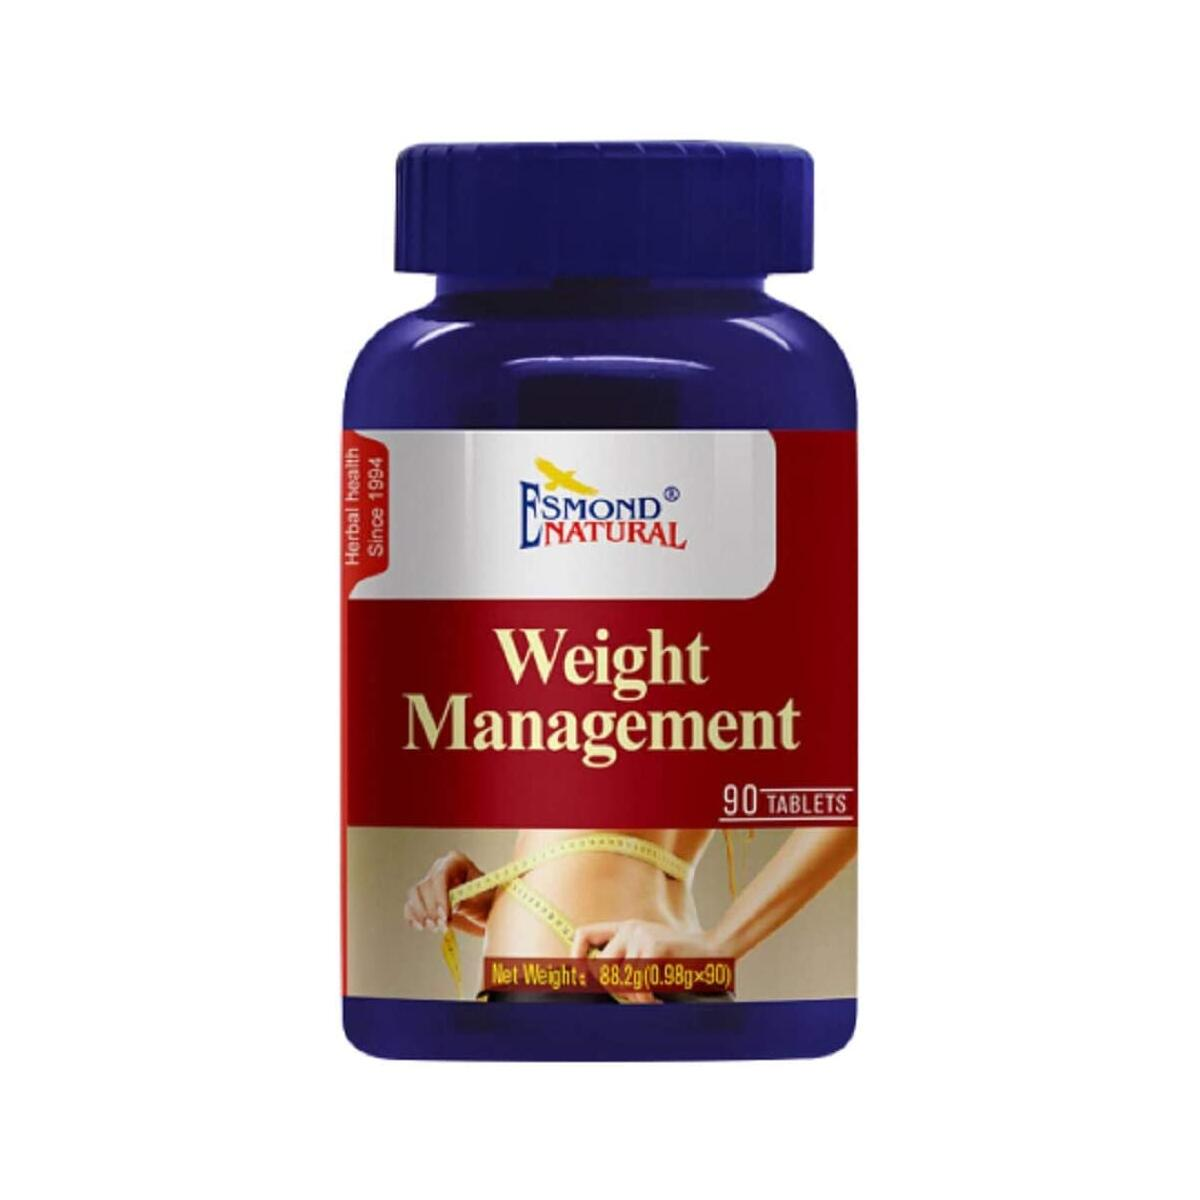 (3 Count, 10% Off) Esmond Natural: Weight Management (Supports Sugar and Energy Metabolism), GMP, Natural Product Assn Certified, Made in USA-270 Tablets